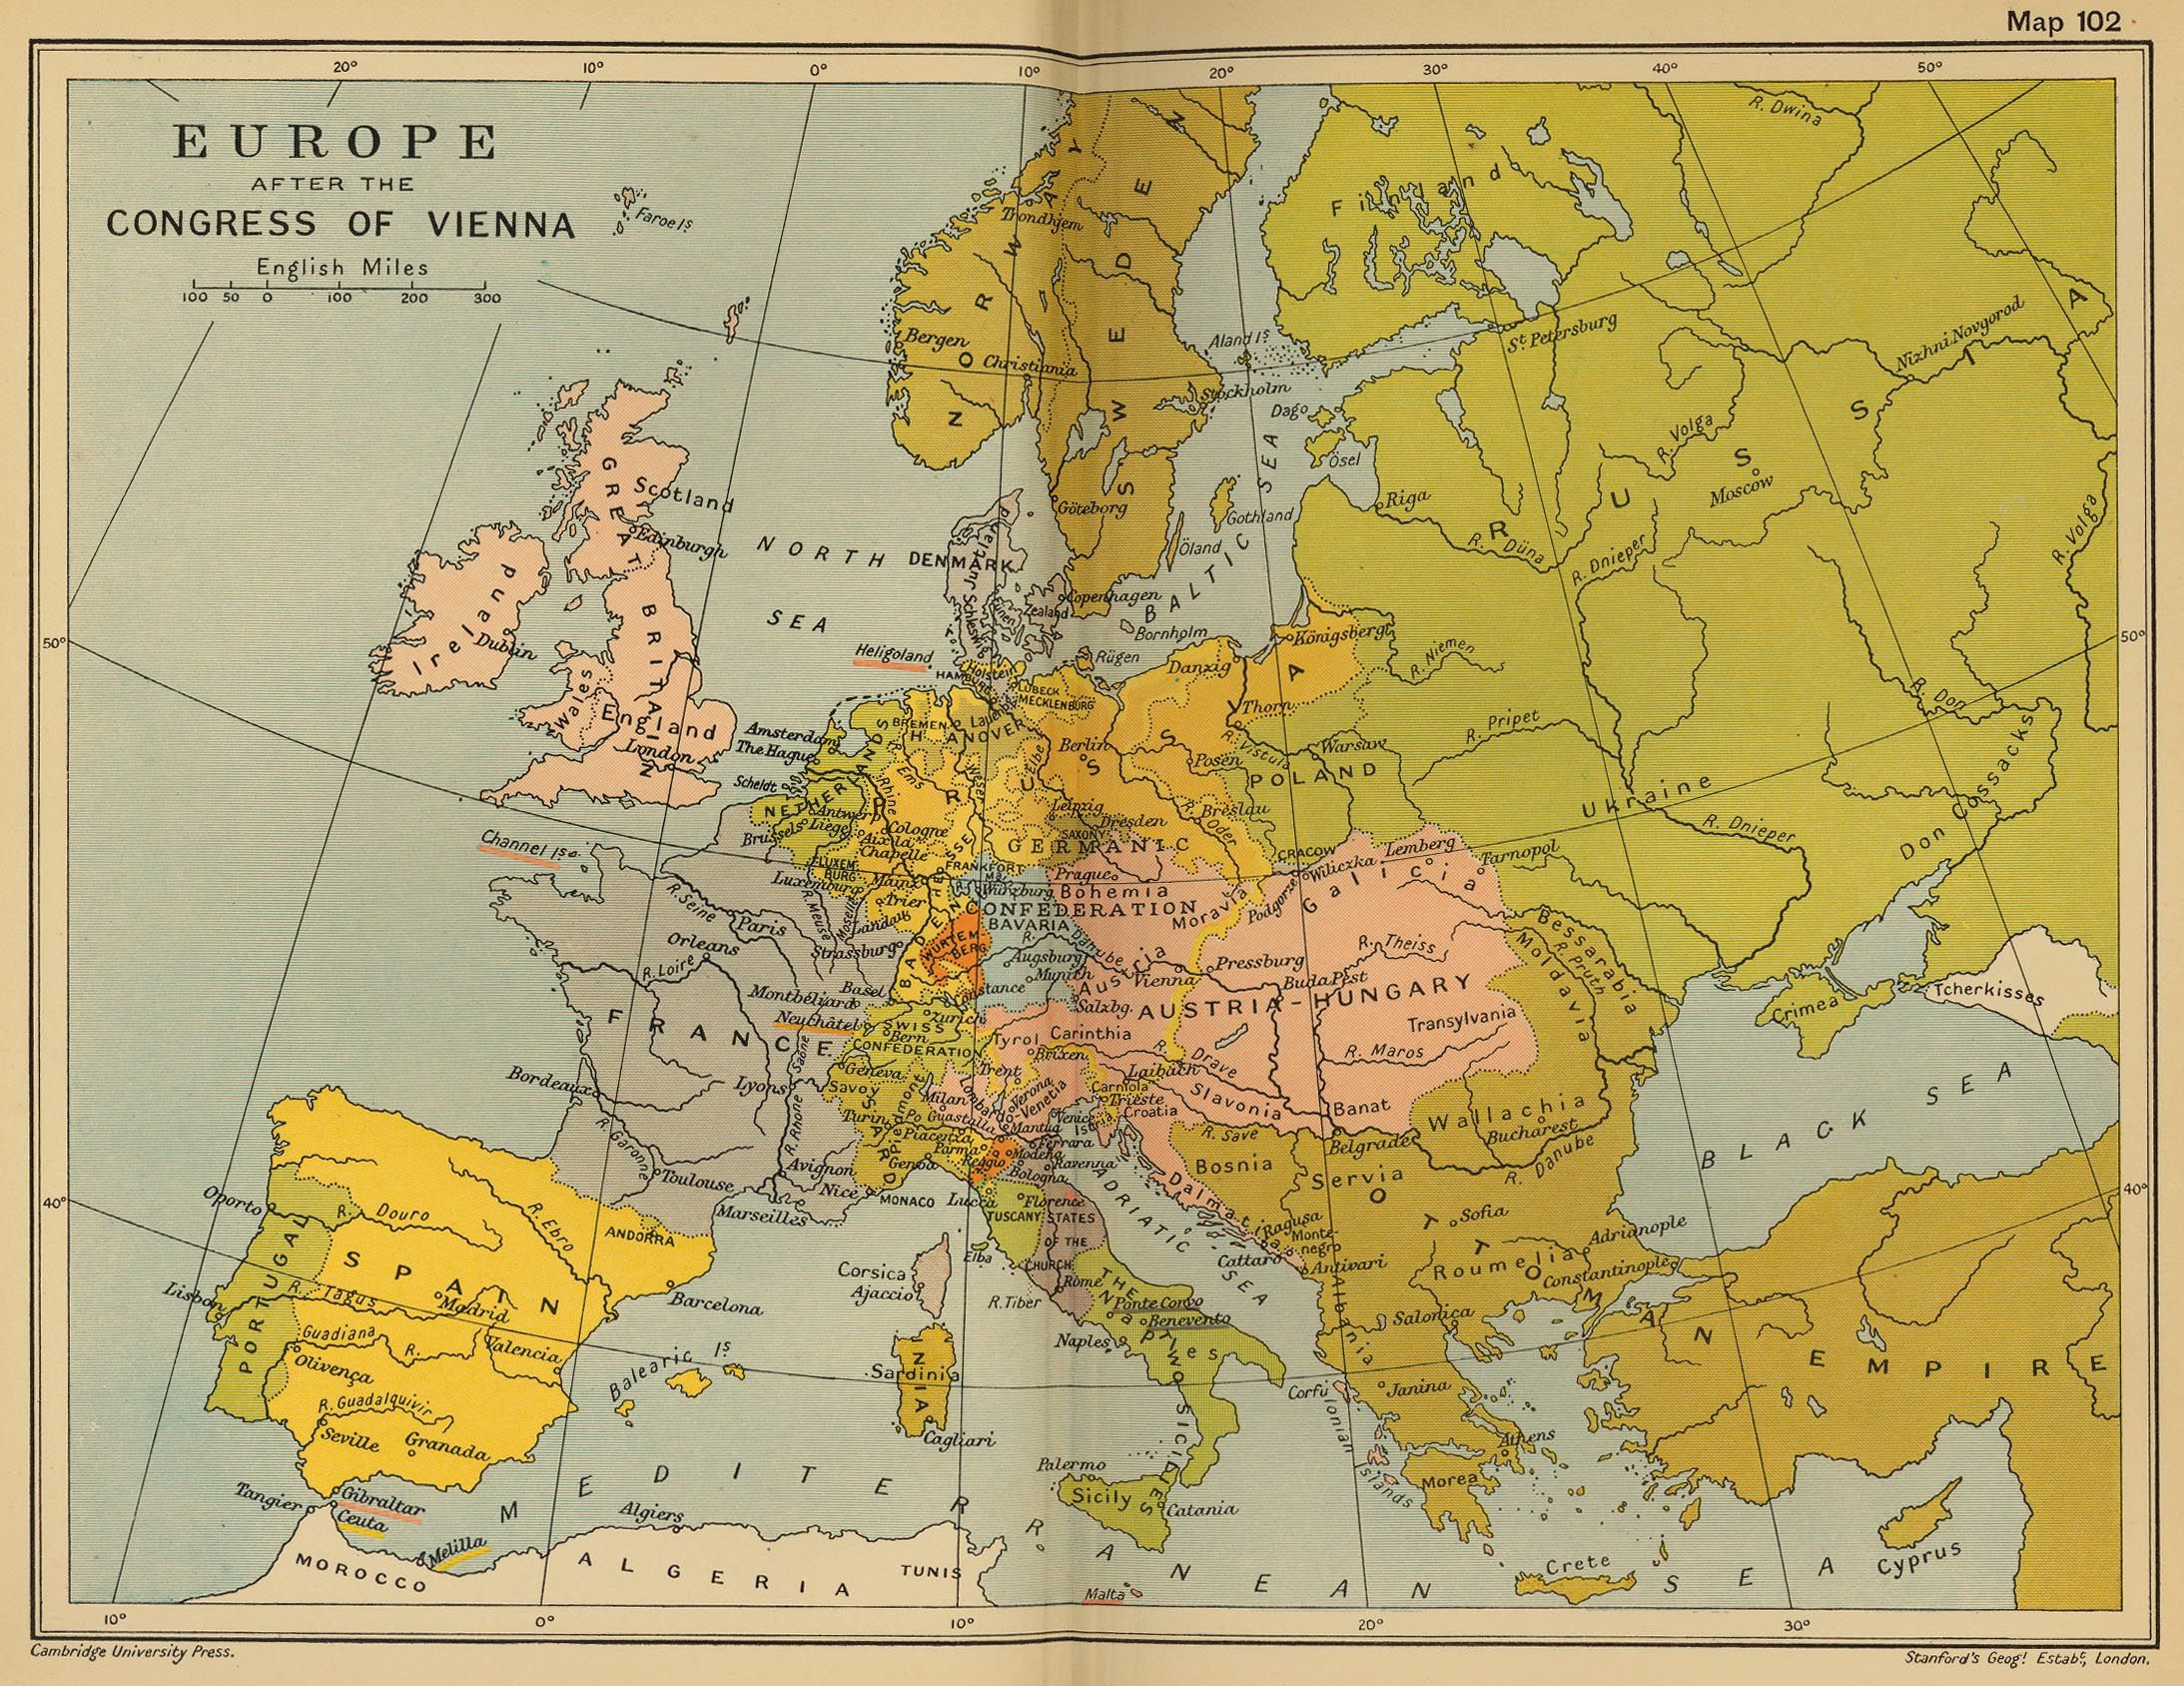 Of europe after the congress of vienna 1815 map of europe after the congress of vienna 1815 sciox Choice Image